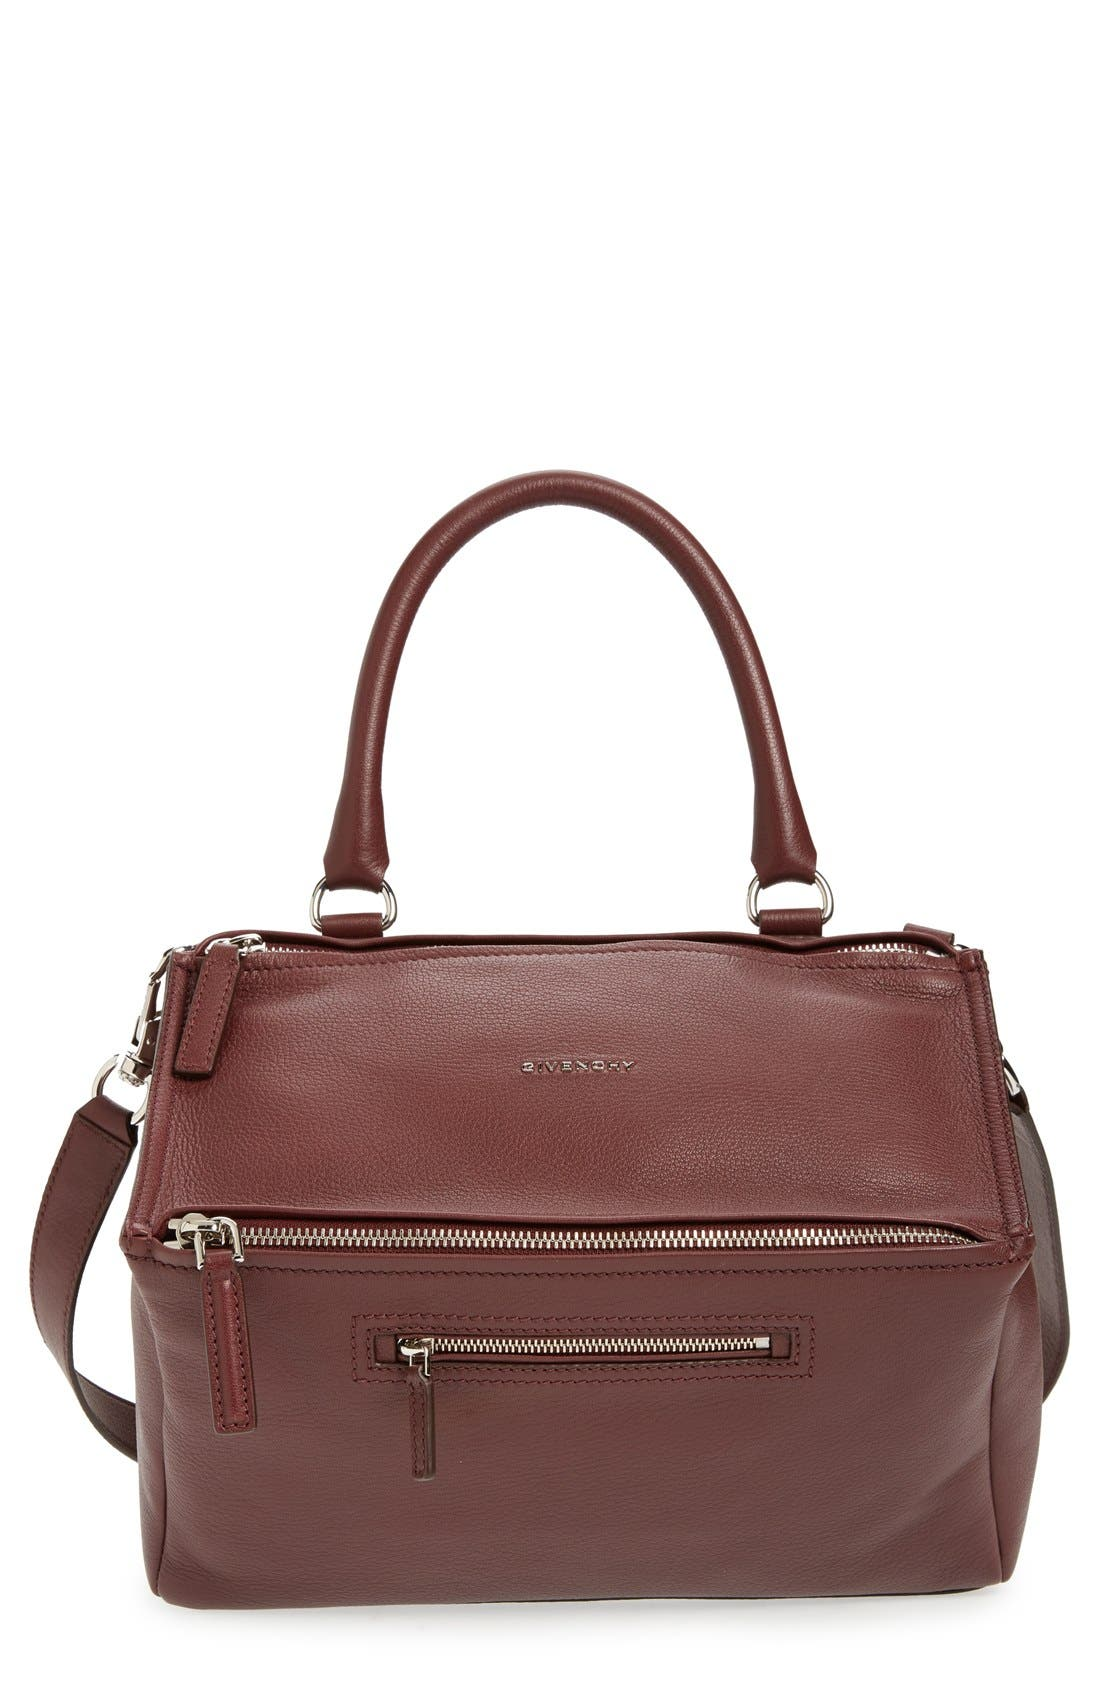 Main Image - Givenchy 'Medium Pandora' Sugar Leather Satchel